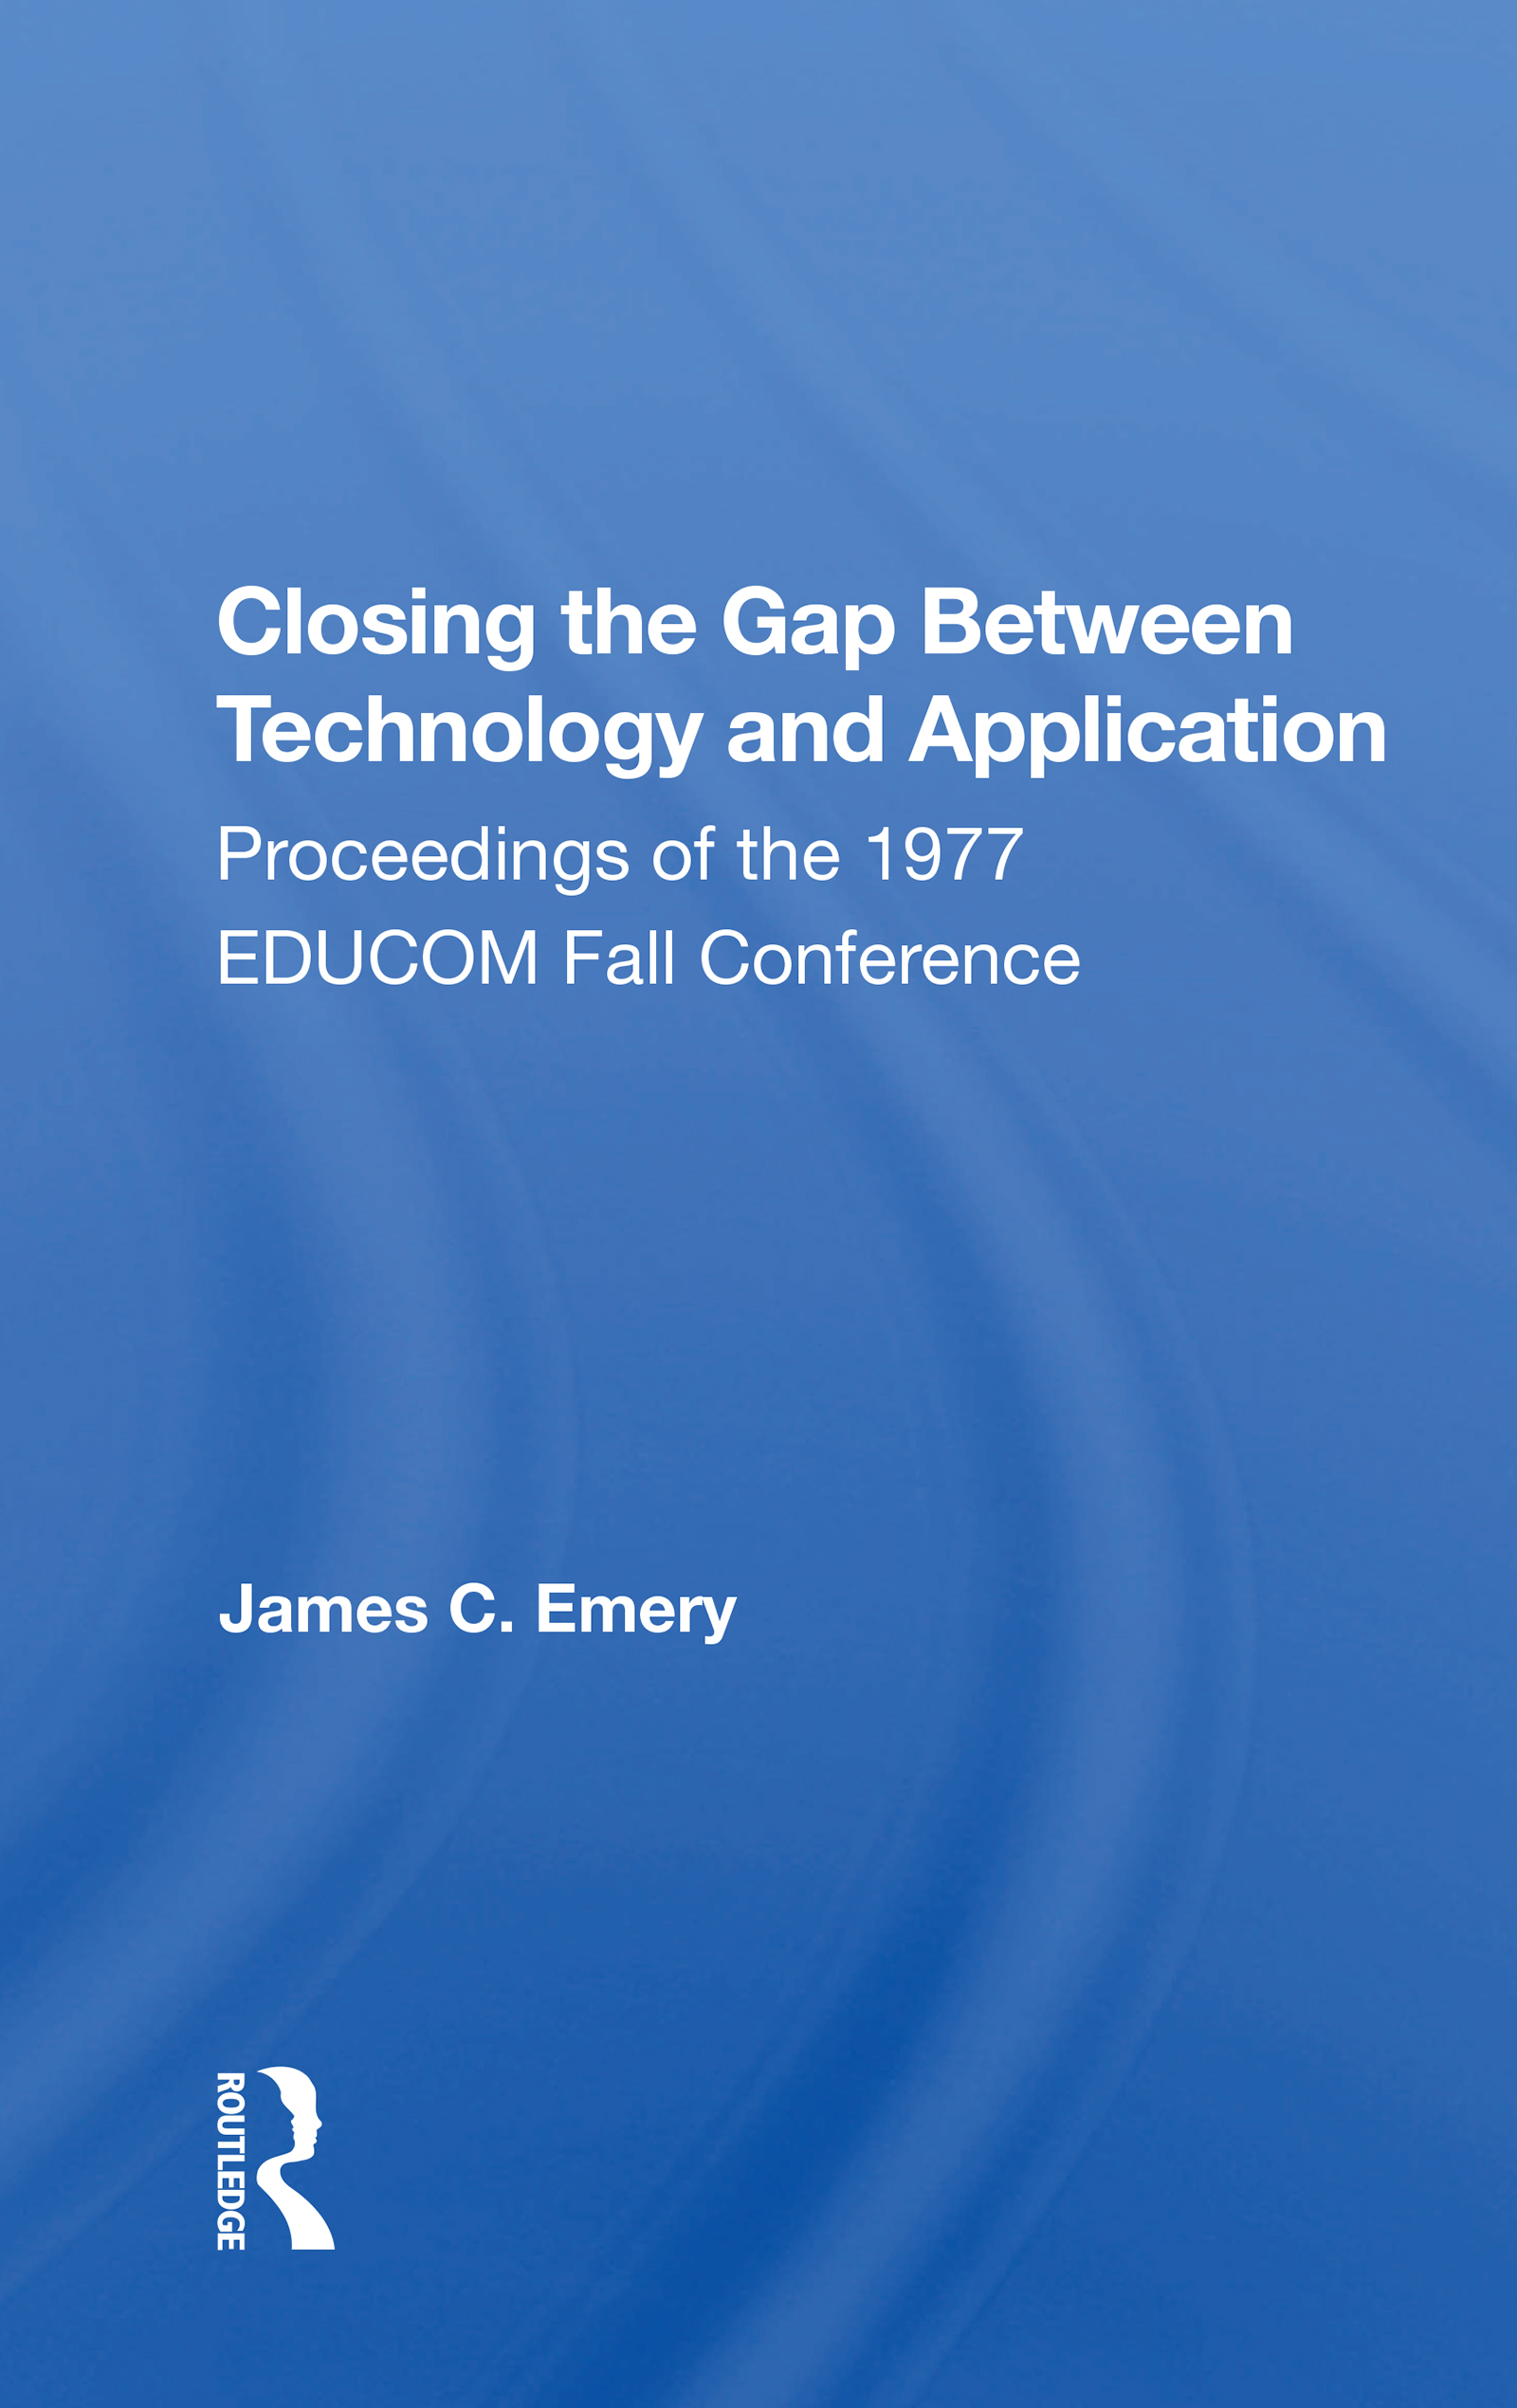 Closing the Gap Between Technology and Application